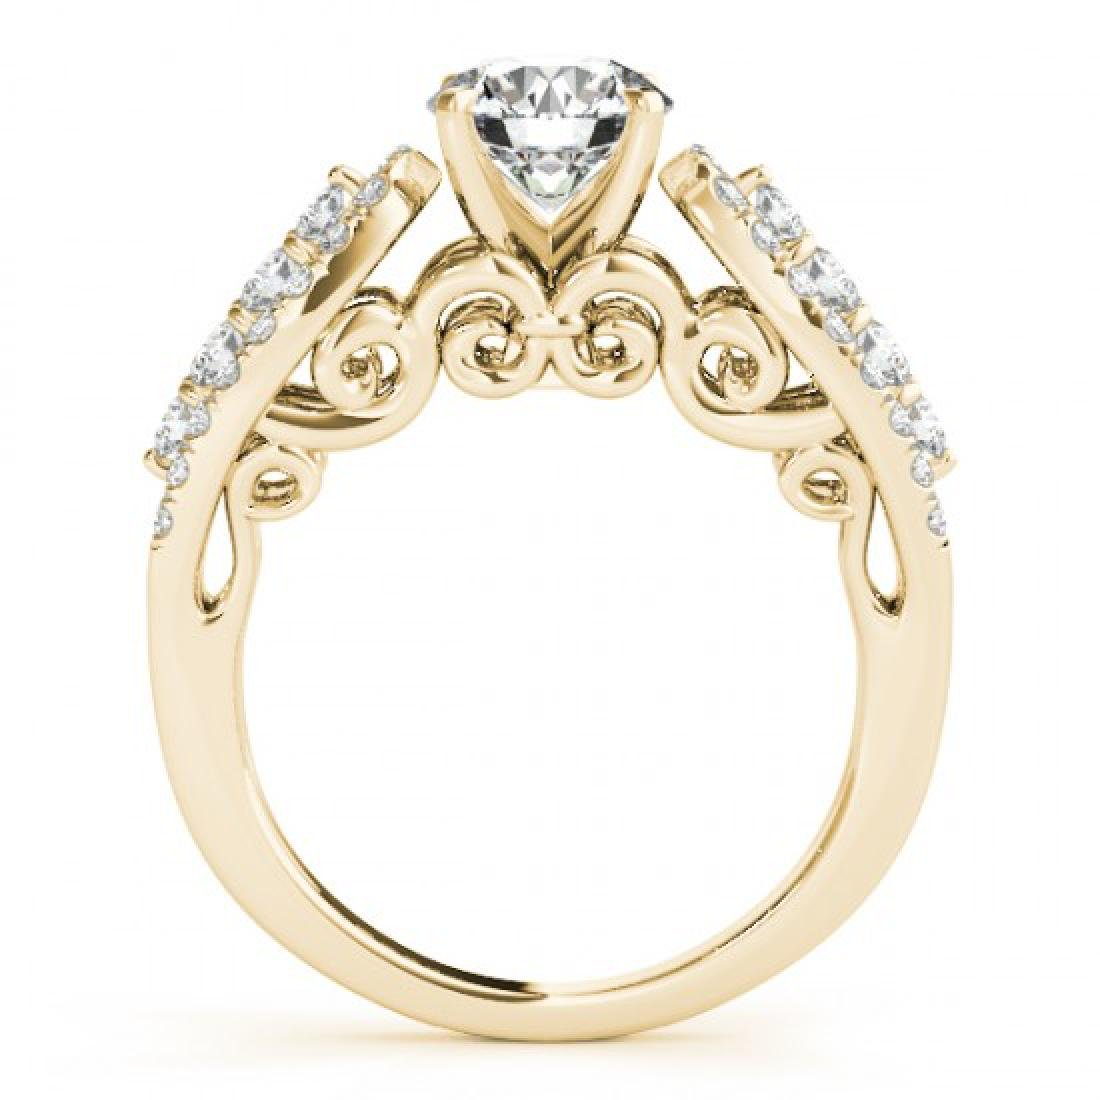 1.7 CTW Certified VS/SI Diamond Solitaire Ring 14K - 2